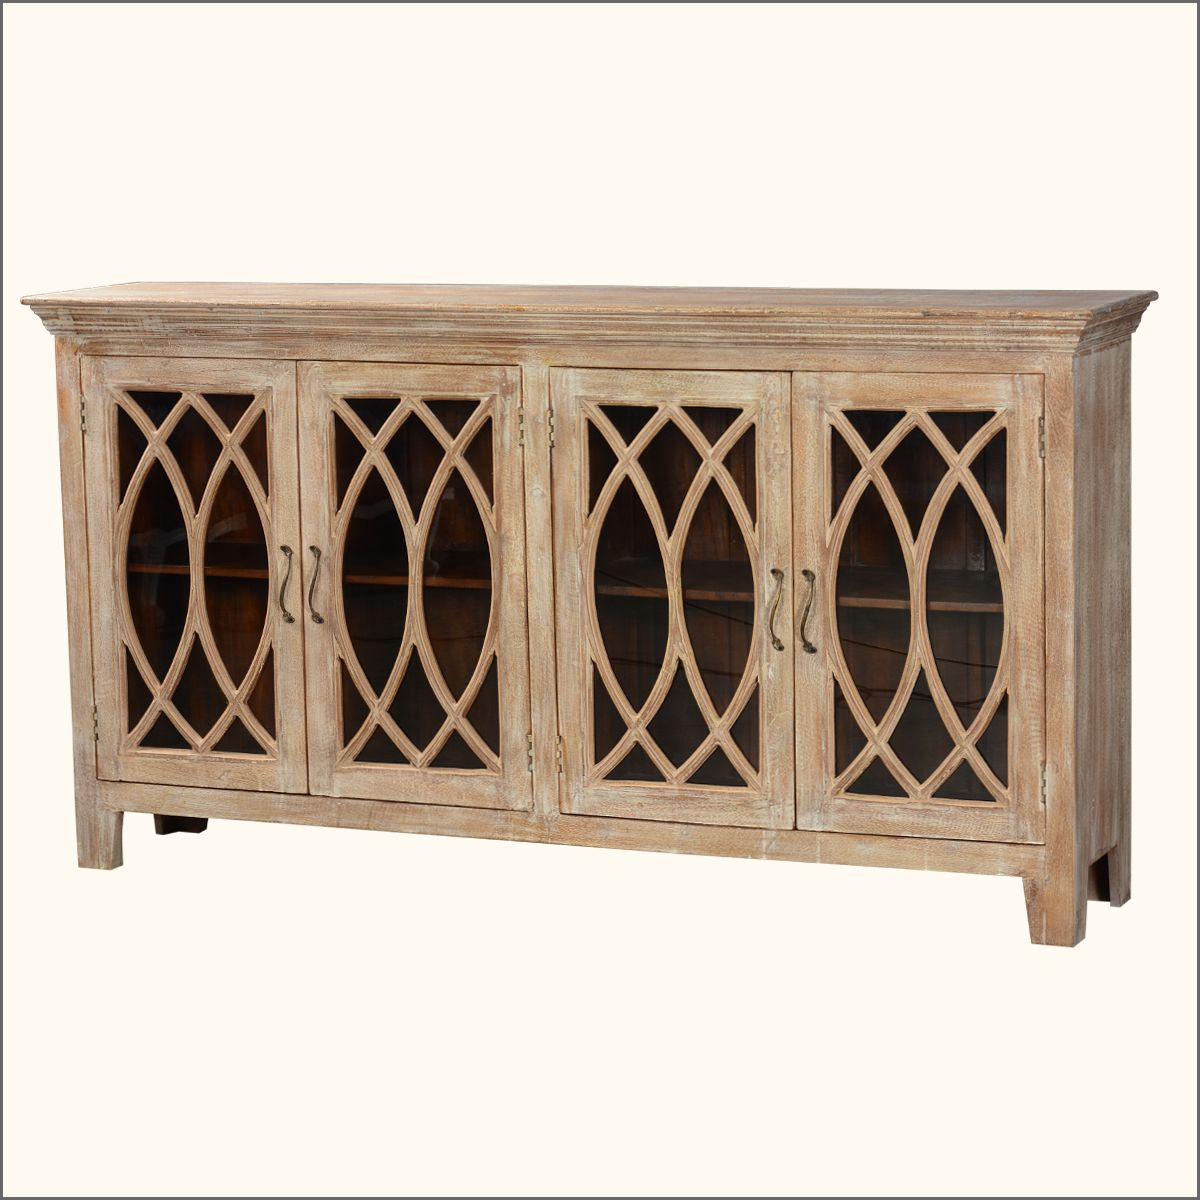 81 5 Solid Wood Glass Door Sideboard 4 Door Rustic Buffet Cabinet Wood Glass Door Rustic Buffet Door Glass Design